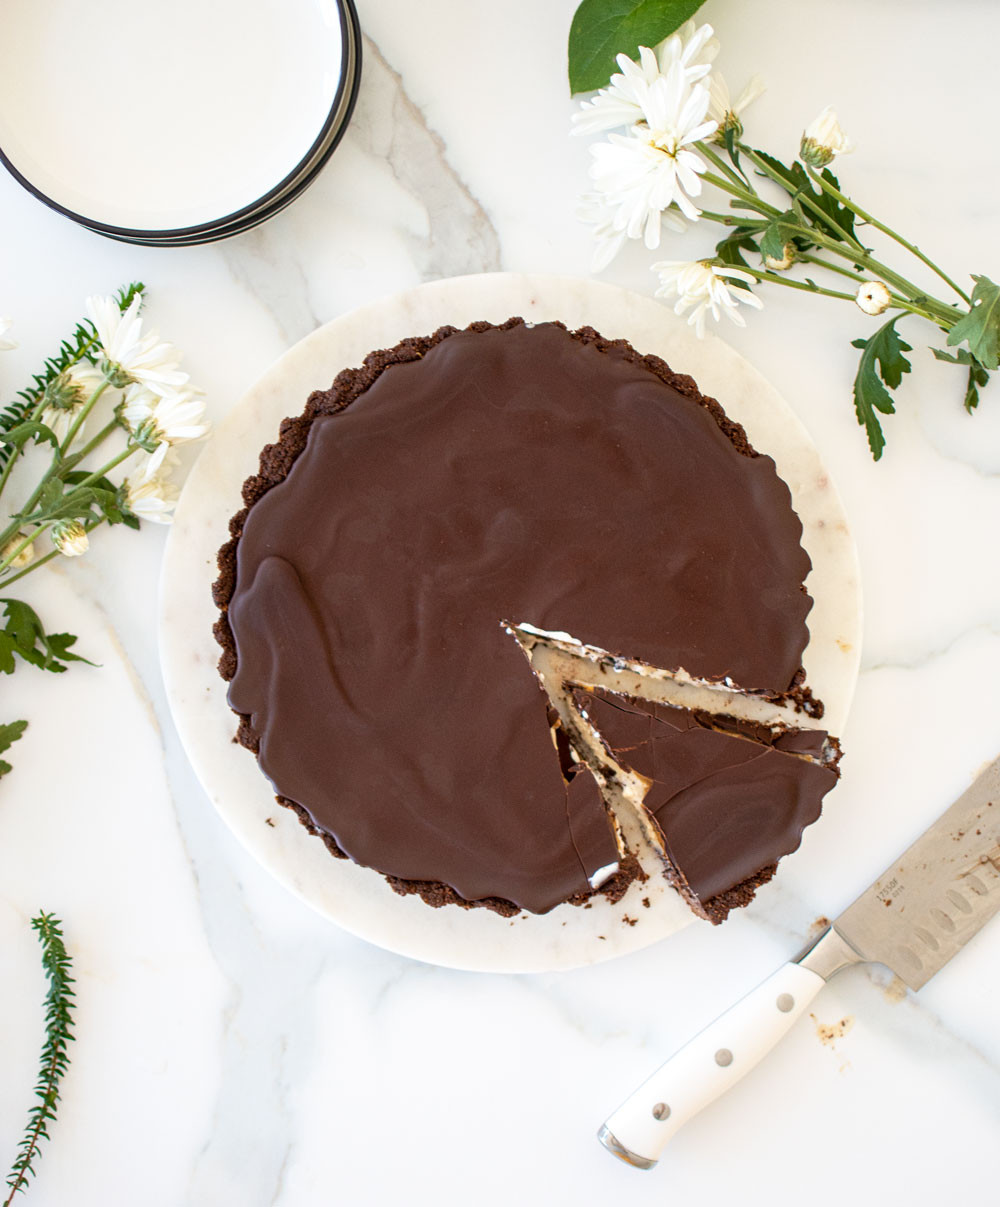 Delicious Chocolate Peanut Butter Ice Cream Tart, the best frozen dessert recipe for summer! This easy frozen tart recipe uses your favorite ice cream, peanut butter, and magic shell to create a homemade ice cream tart that you will love! Just need to make the chocolate graham cracker crust, and this tart is so easy to assemble and enjoy on a hot summer night. #tart #tartrecipe #organicicecream #icecreamtart #chocolatepeanutbutter